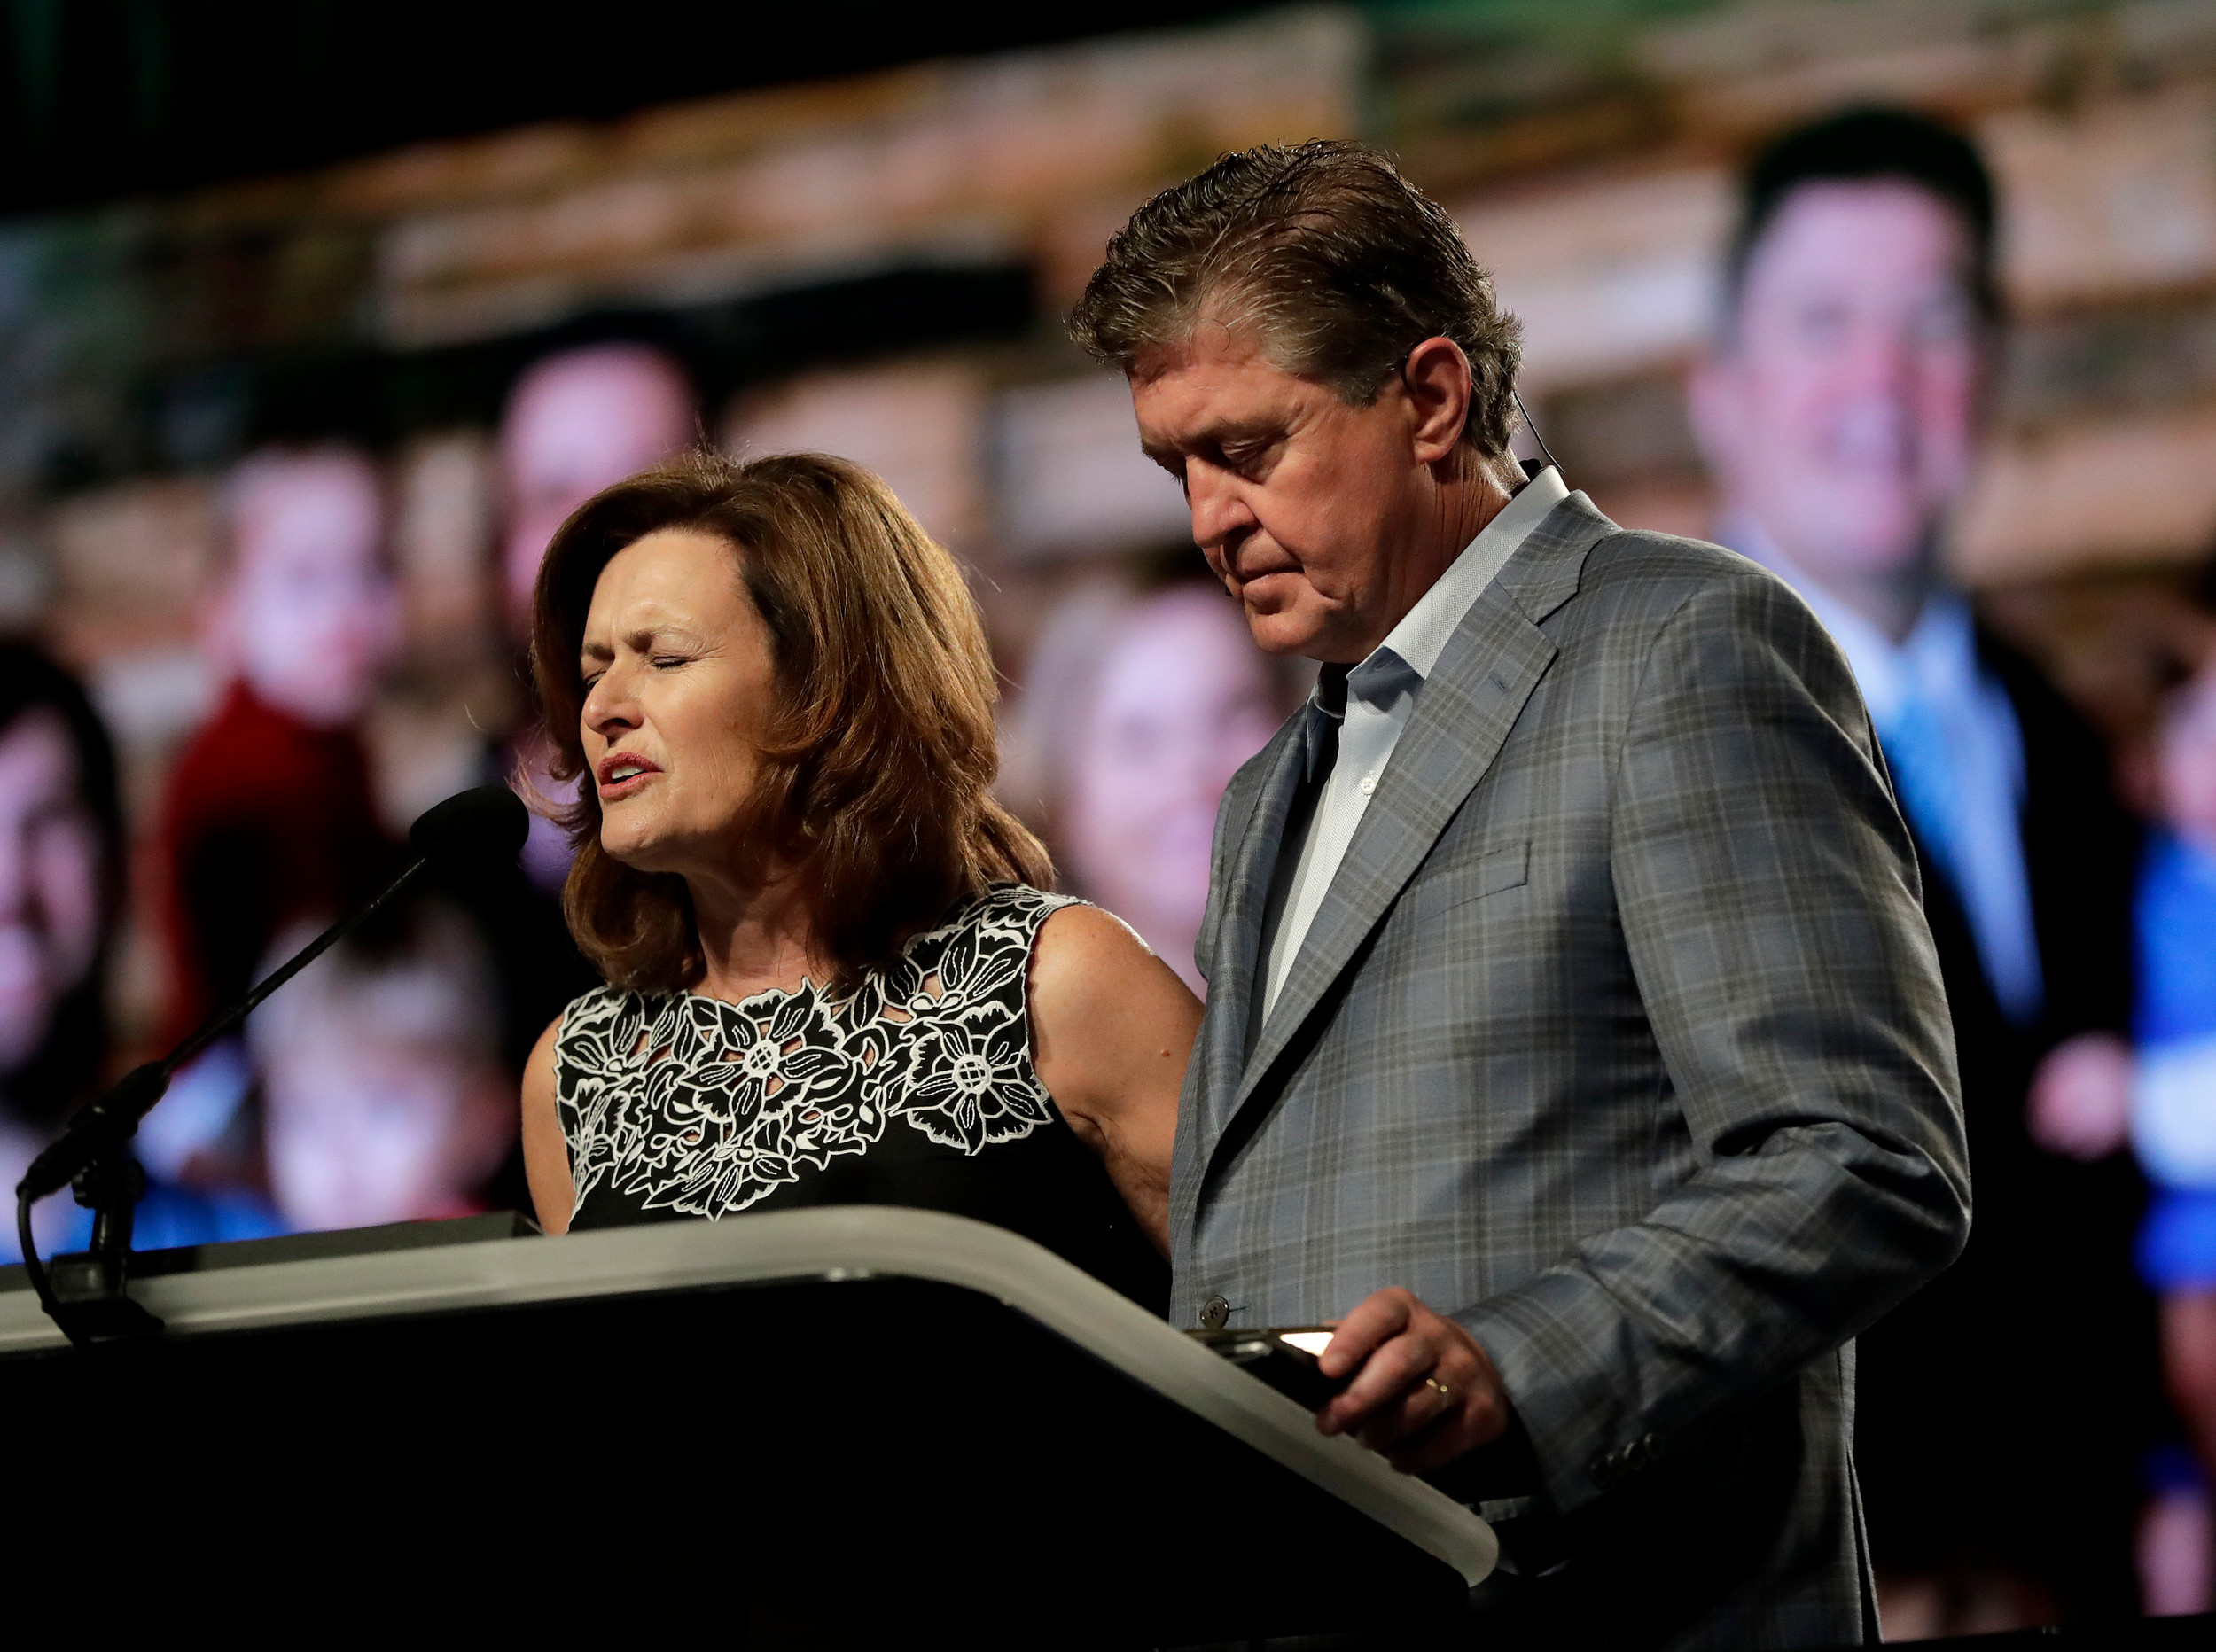 THE ASSOCIATED PRESSDr. Steve Gaines and his wife, Donna, pray prior to the president's address during the Southern Baptist Convention annual meeting 	on Tuesday.